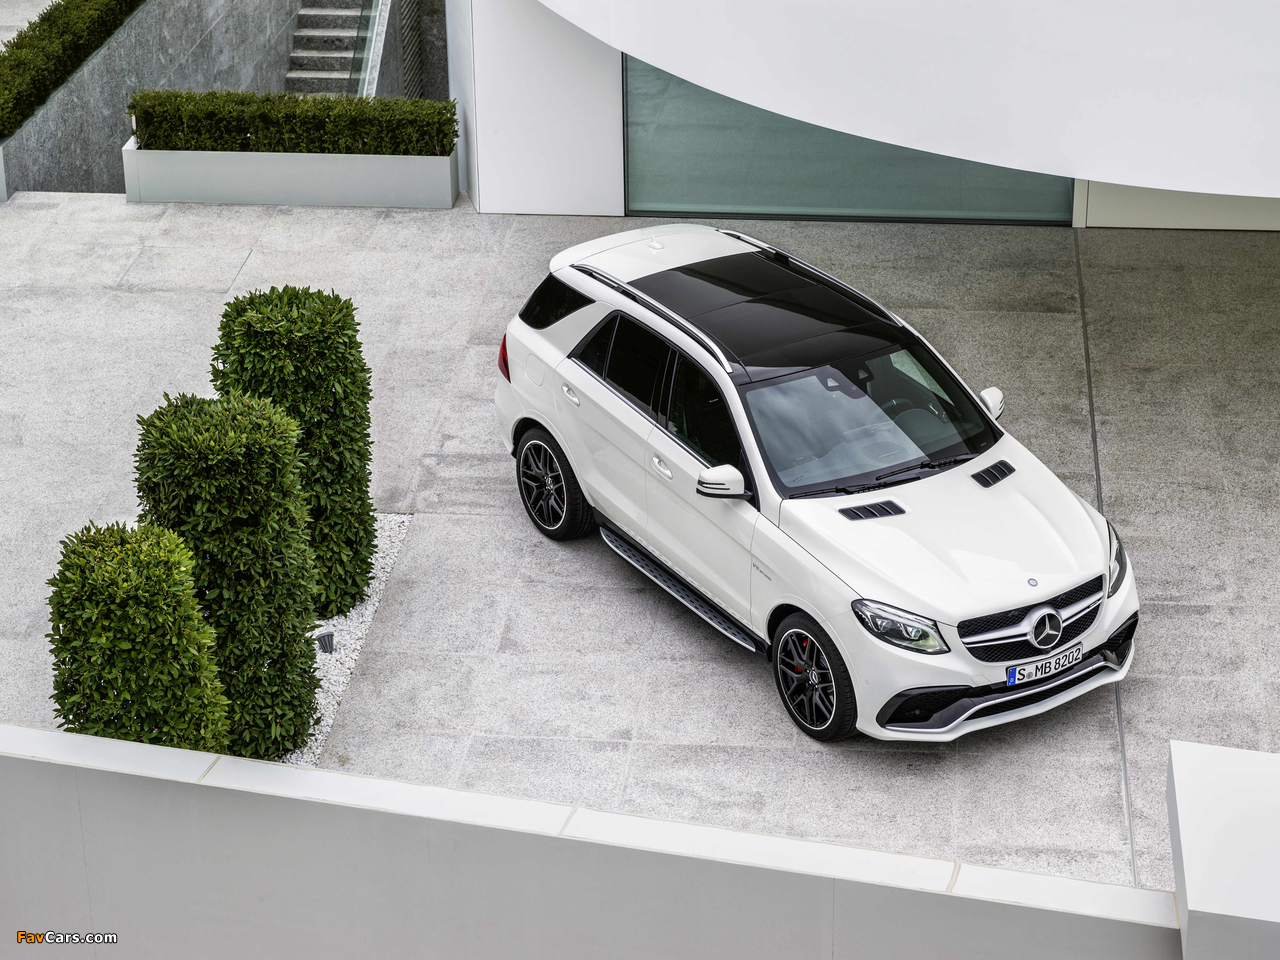 Mercedes-AMG GLE 63 S 4MATIC (W166) 2015 pictures (1280 x 960)